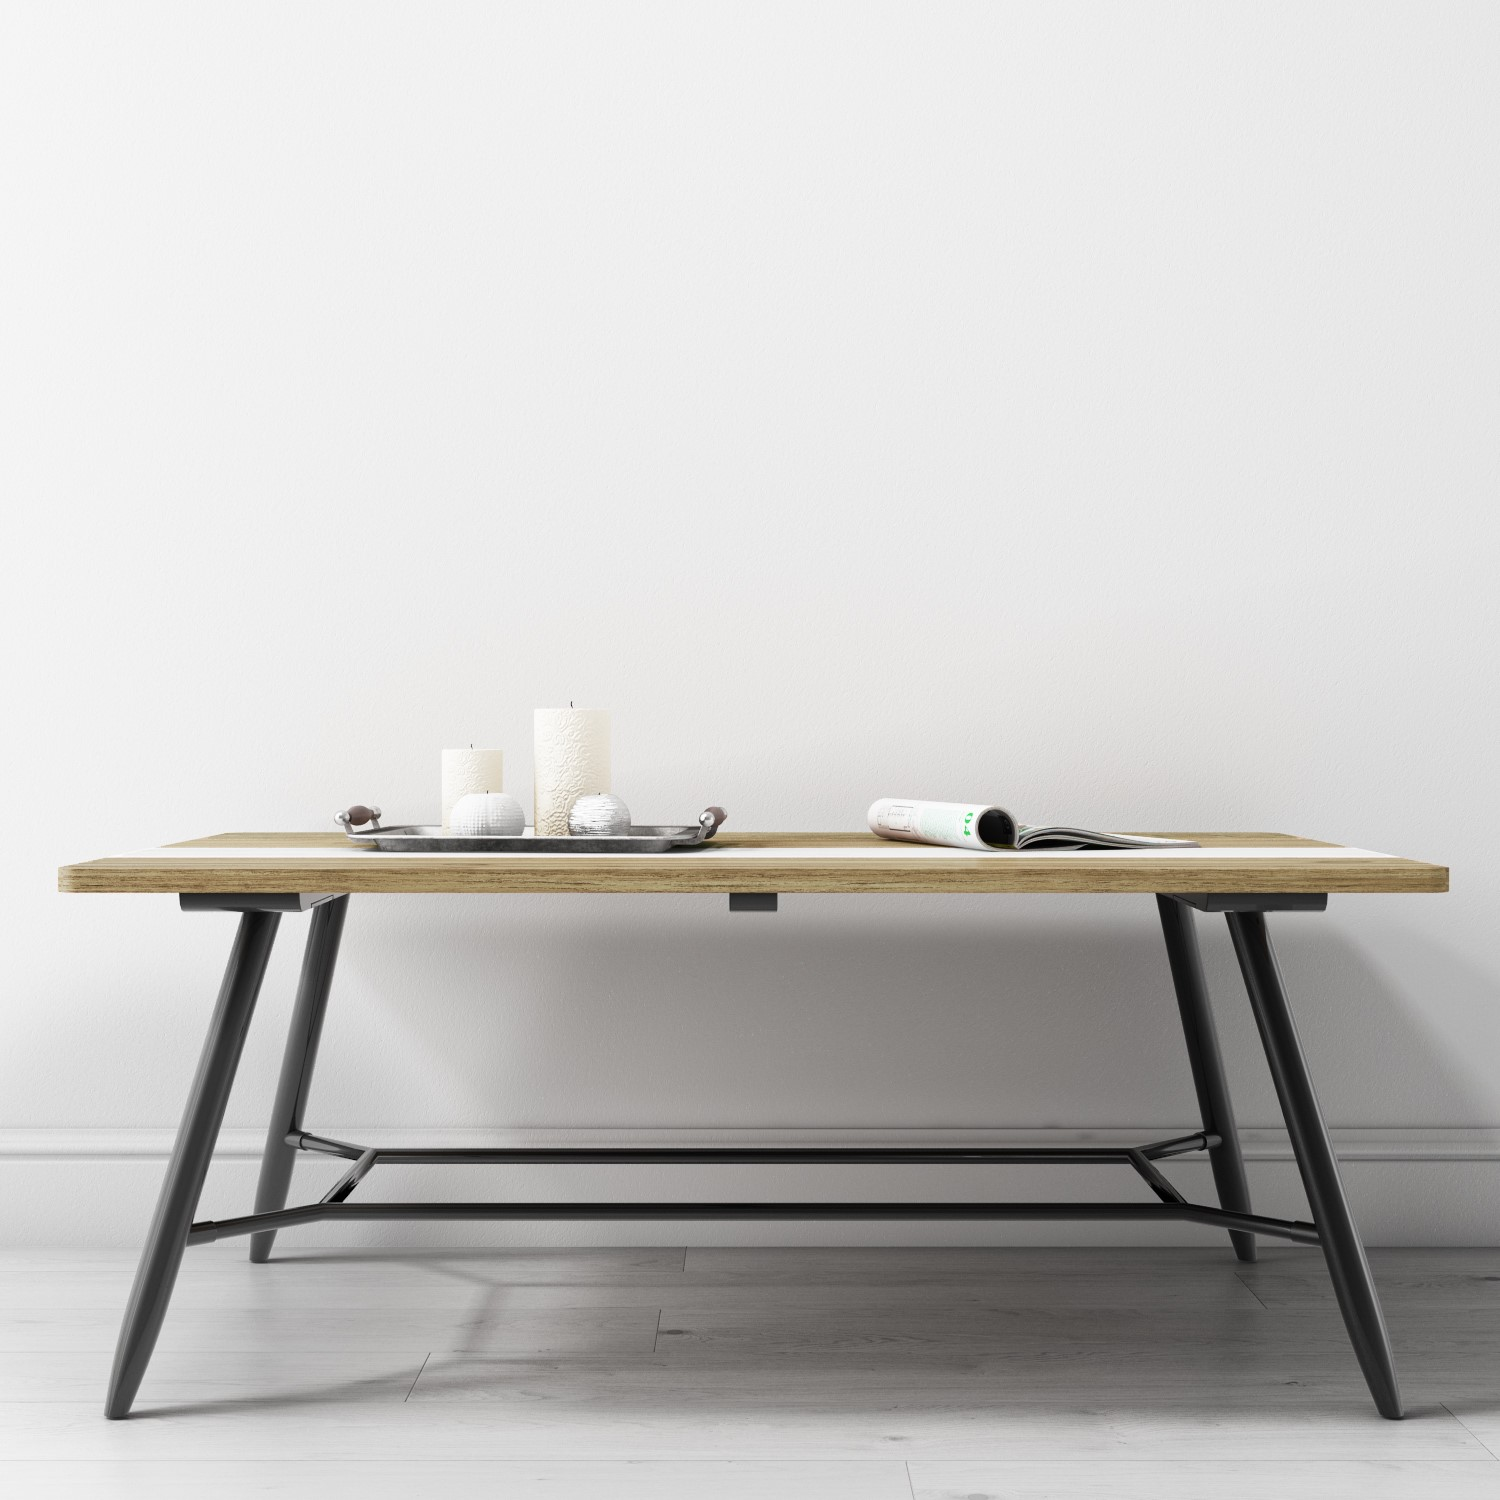 Picture of: Reclaimed Wood Coffee Table With Black Metal Legs Kuta Furniture123